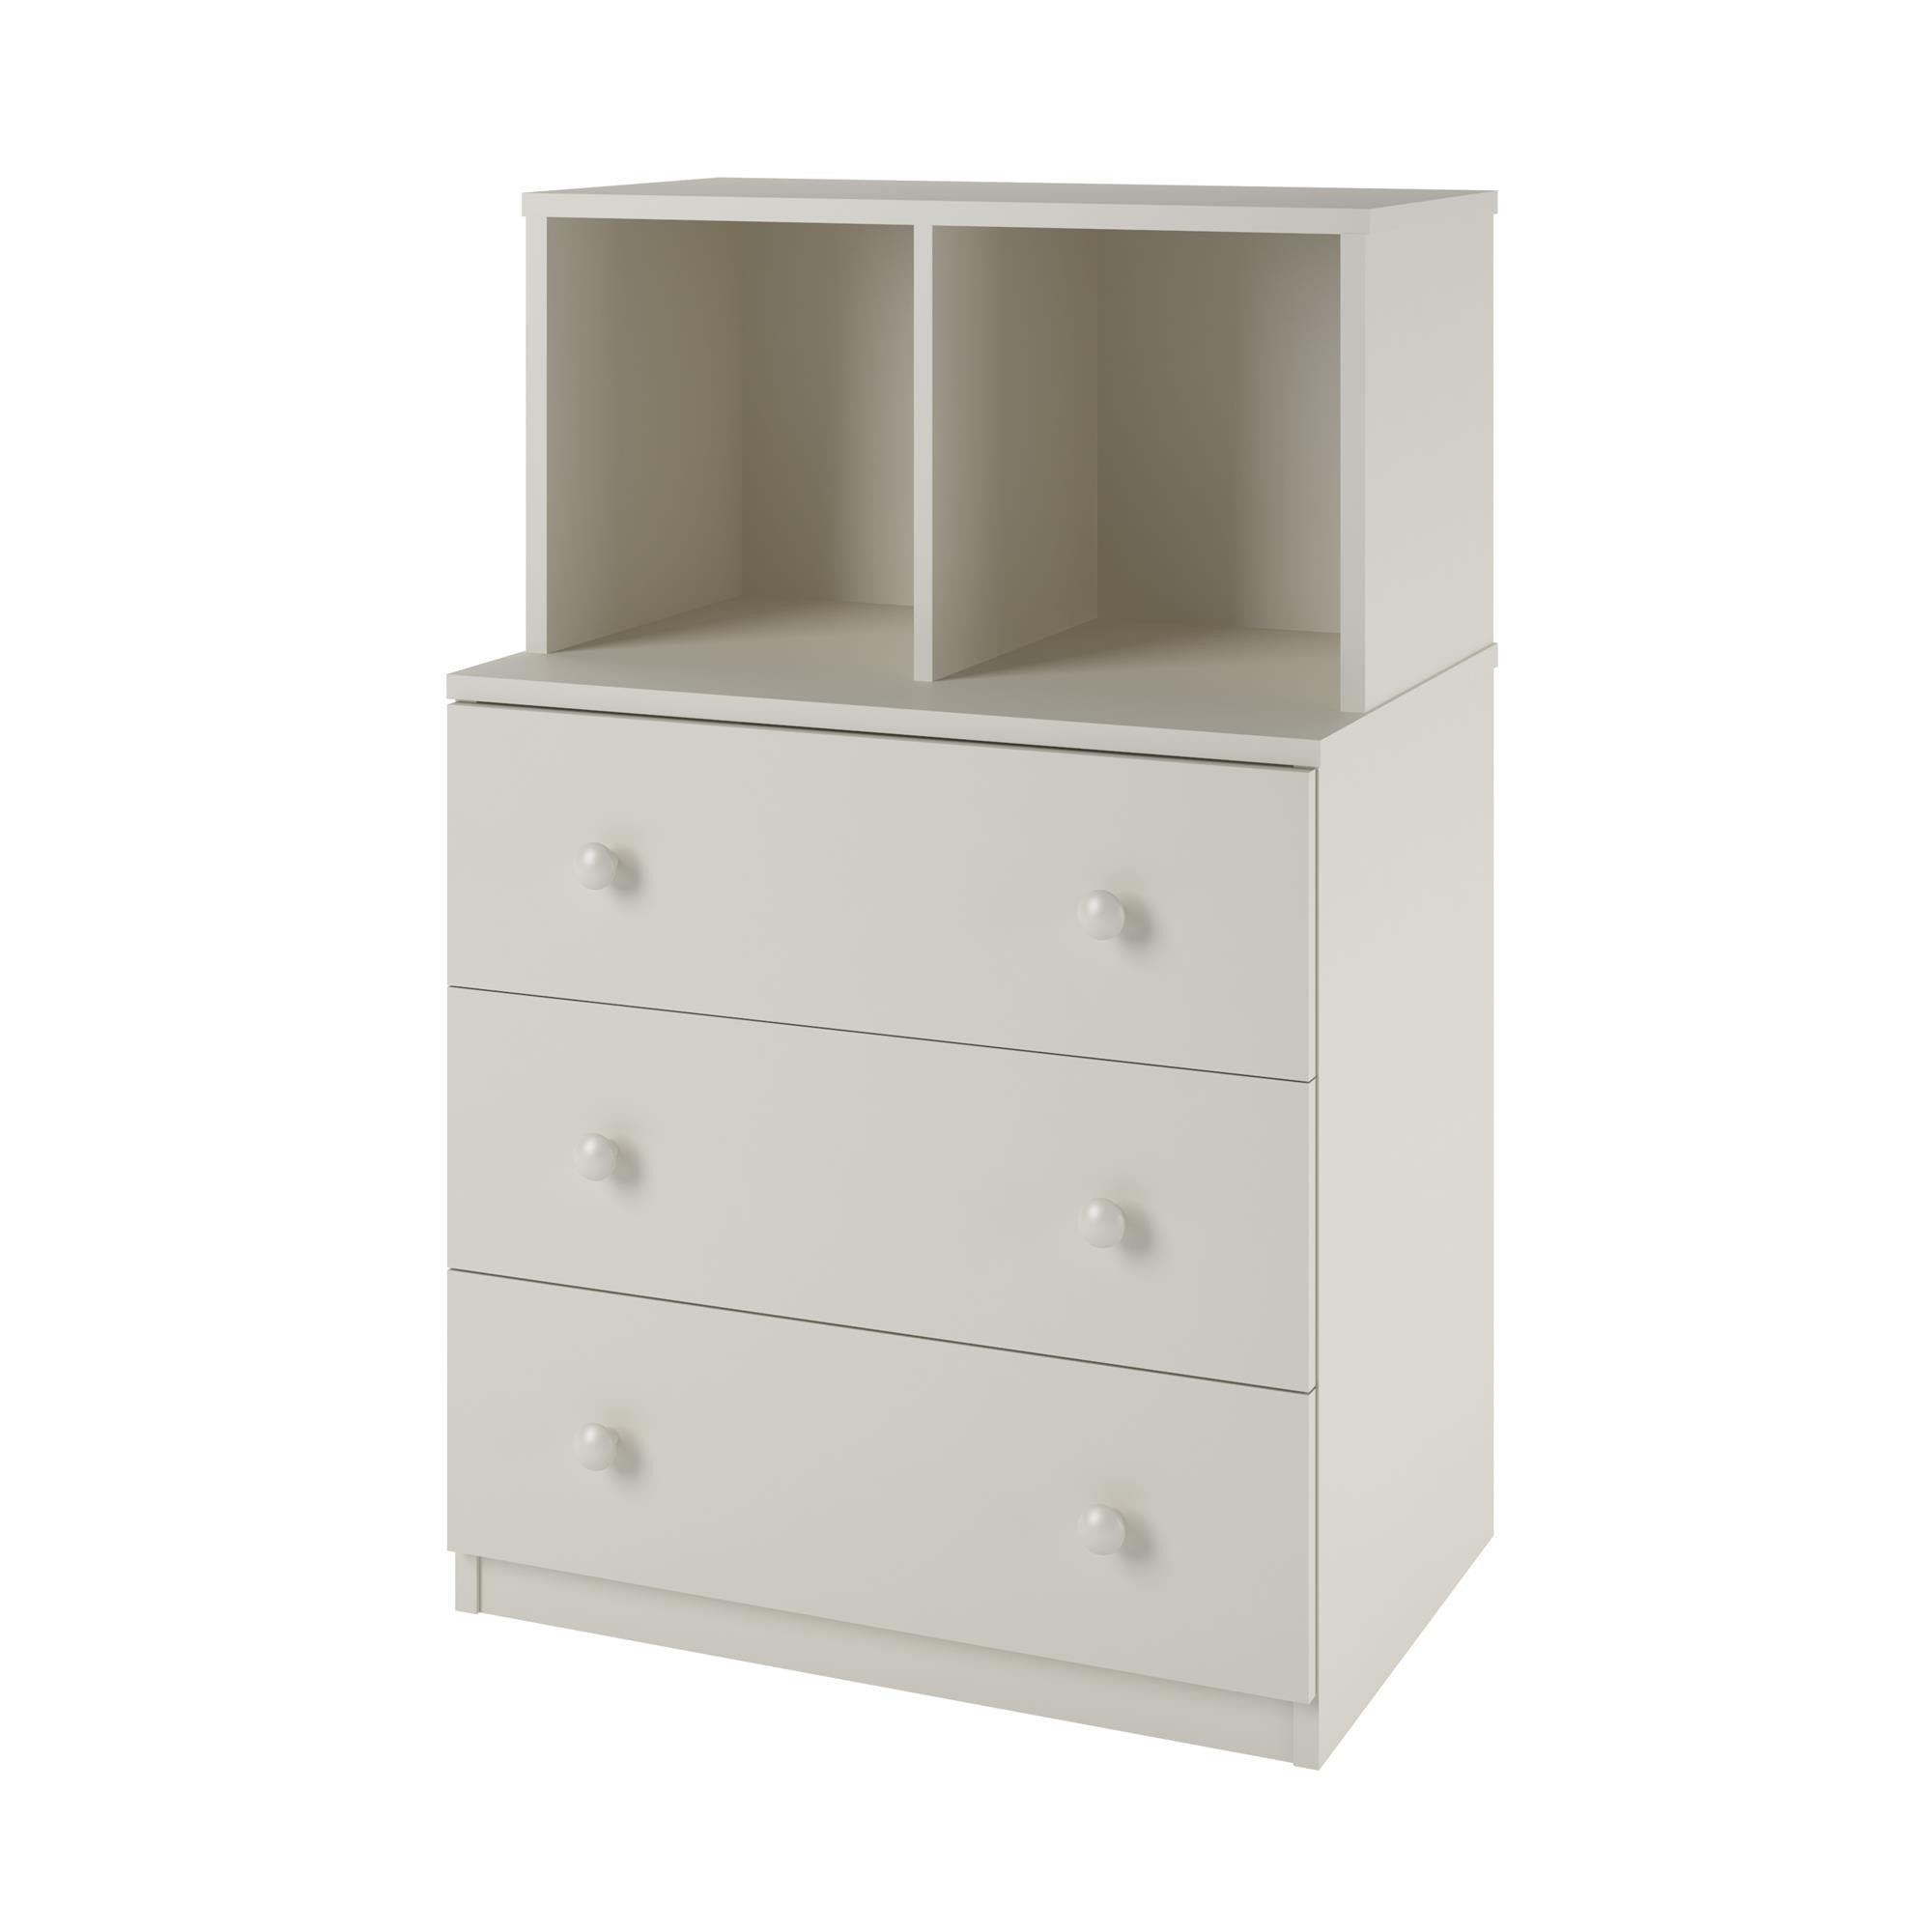 white kids dresser. Shop Altra Skyler White Kids Dresser With Cubbies By Cosco - Free Shipping Today Overstock.com 10191760 R